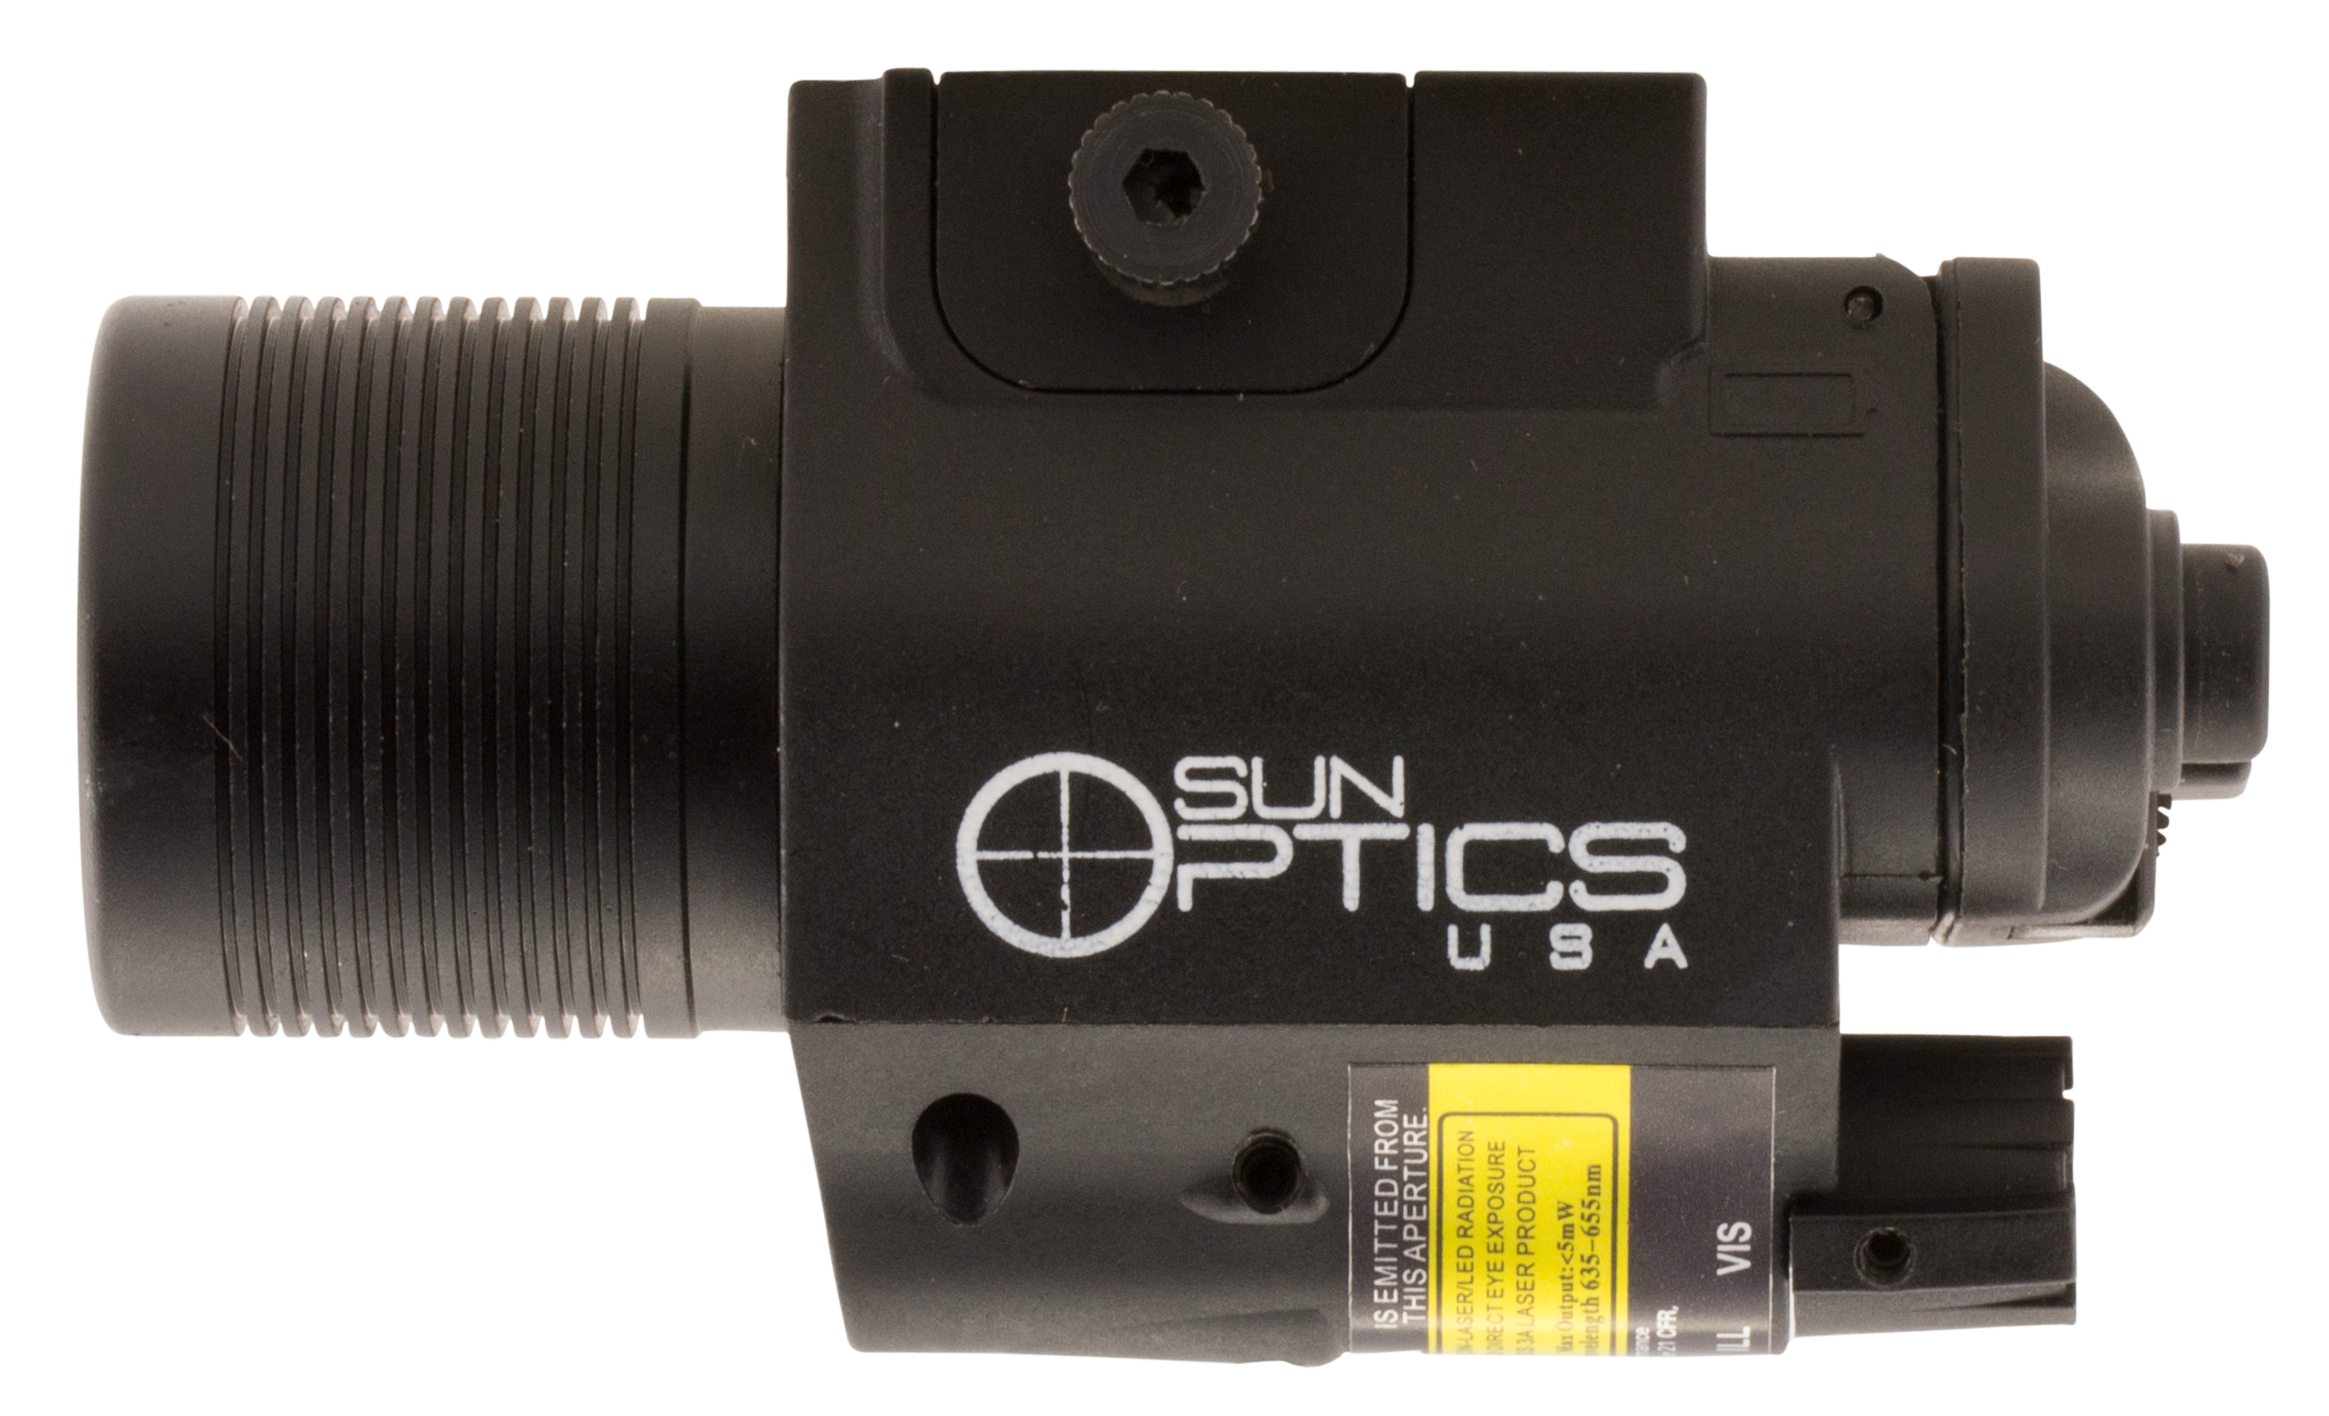 Sun Optics CLFCLR 750 Lumen Light/Laser Red Laser Any with Rail Picatinny or Similar Rails